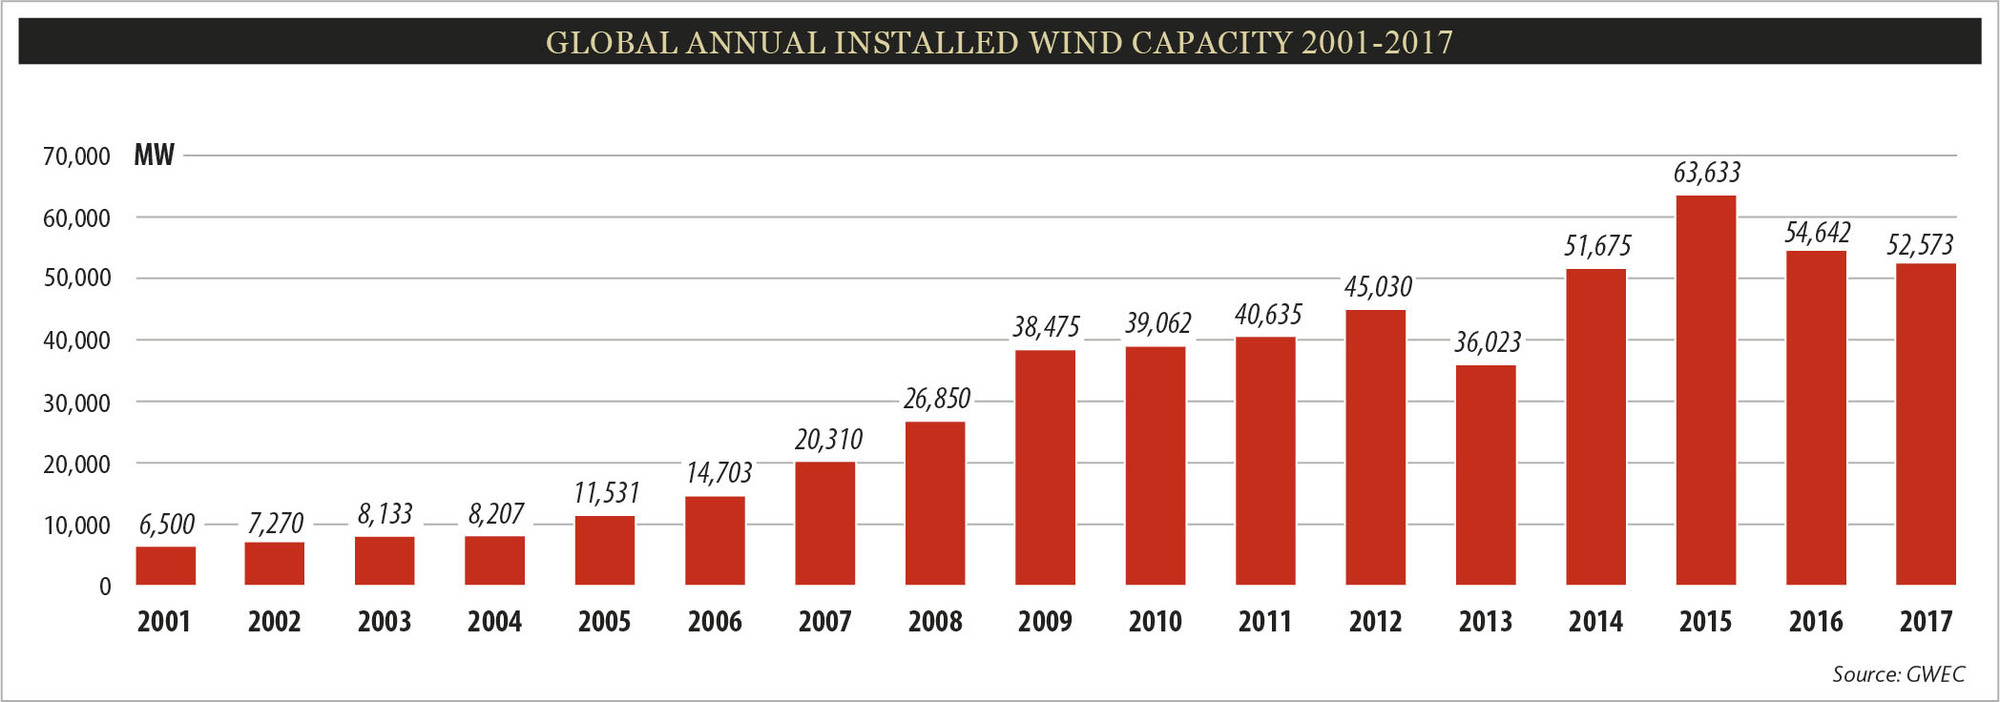 https://i0.wp.com/gwec.net/wp-content/uploads/2018/02/Global_Annual_Installed_Wind_Capacity_2001-2017.jpg